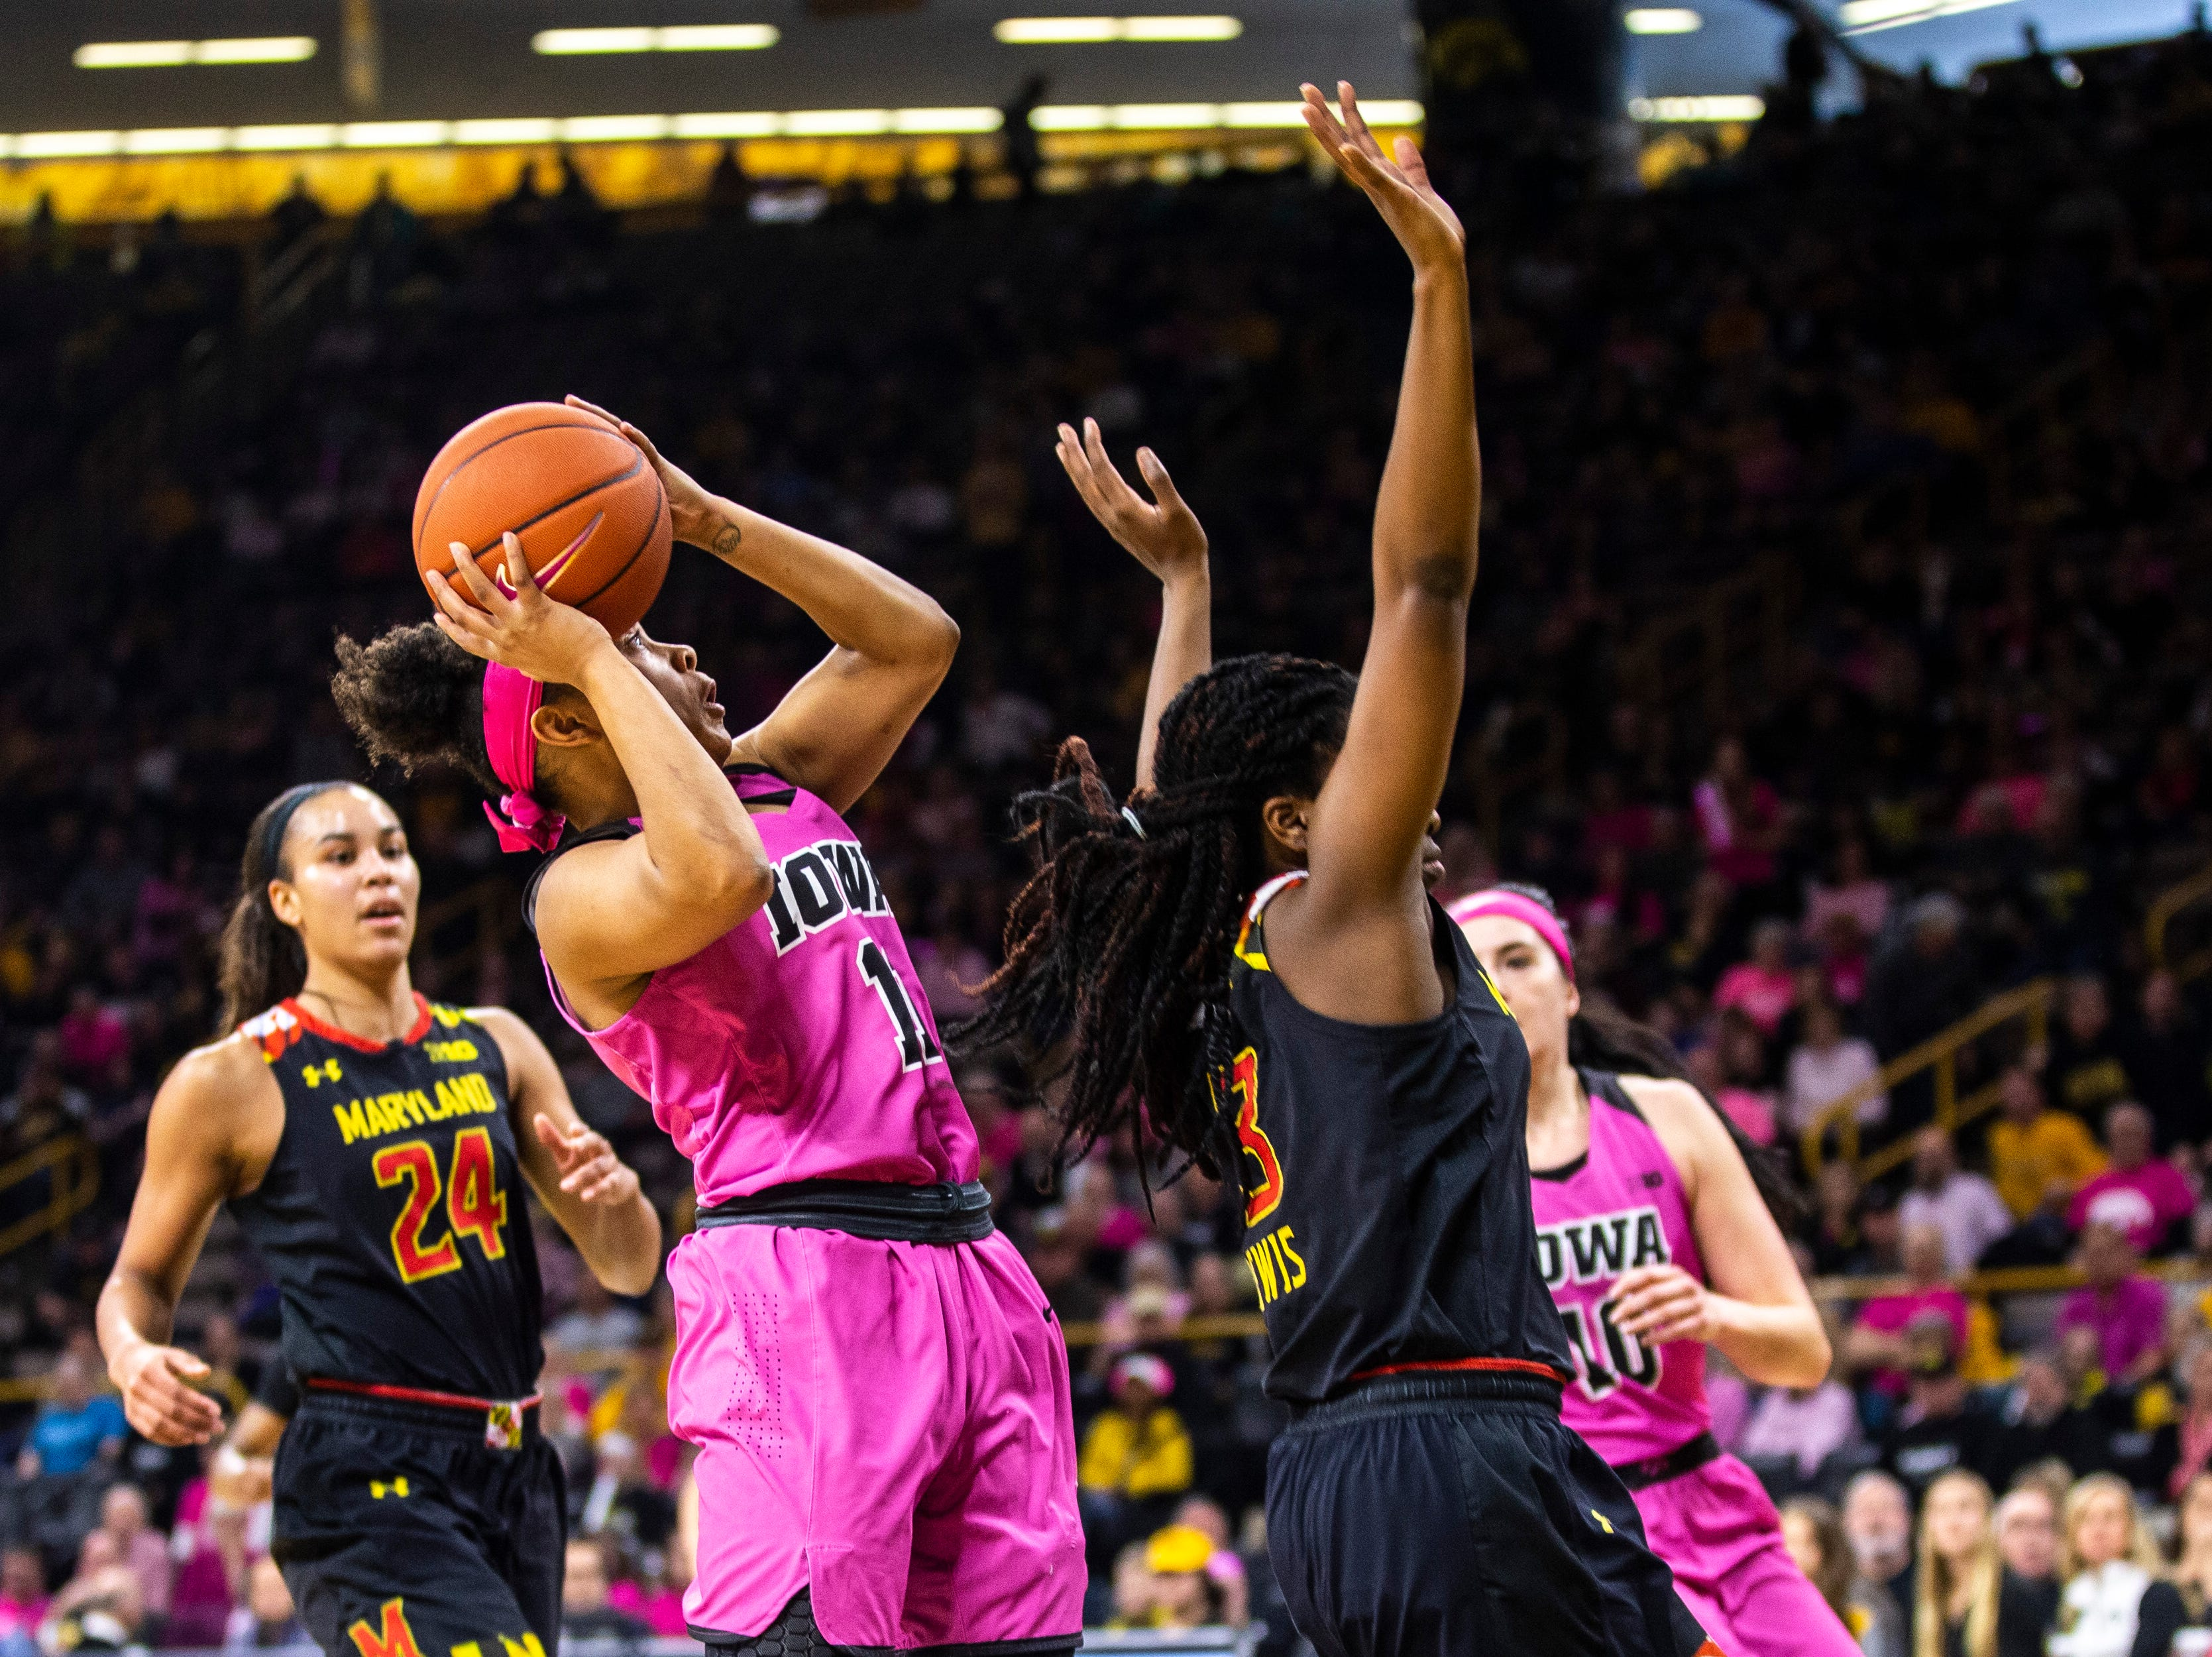 Iowa guard Tania Davis (11) attempts a basket while Maryland guard Channise Lewis (3) defends during a NCAA Big Ten Conference women's basketball game on Sunday, Feb. 17, 2019 at Carver-Hawkeye Arena in Iowa City, Iowa.